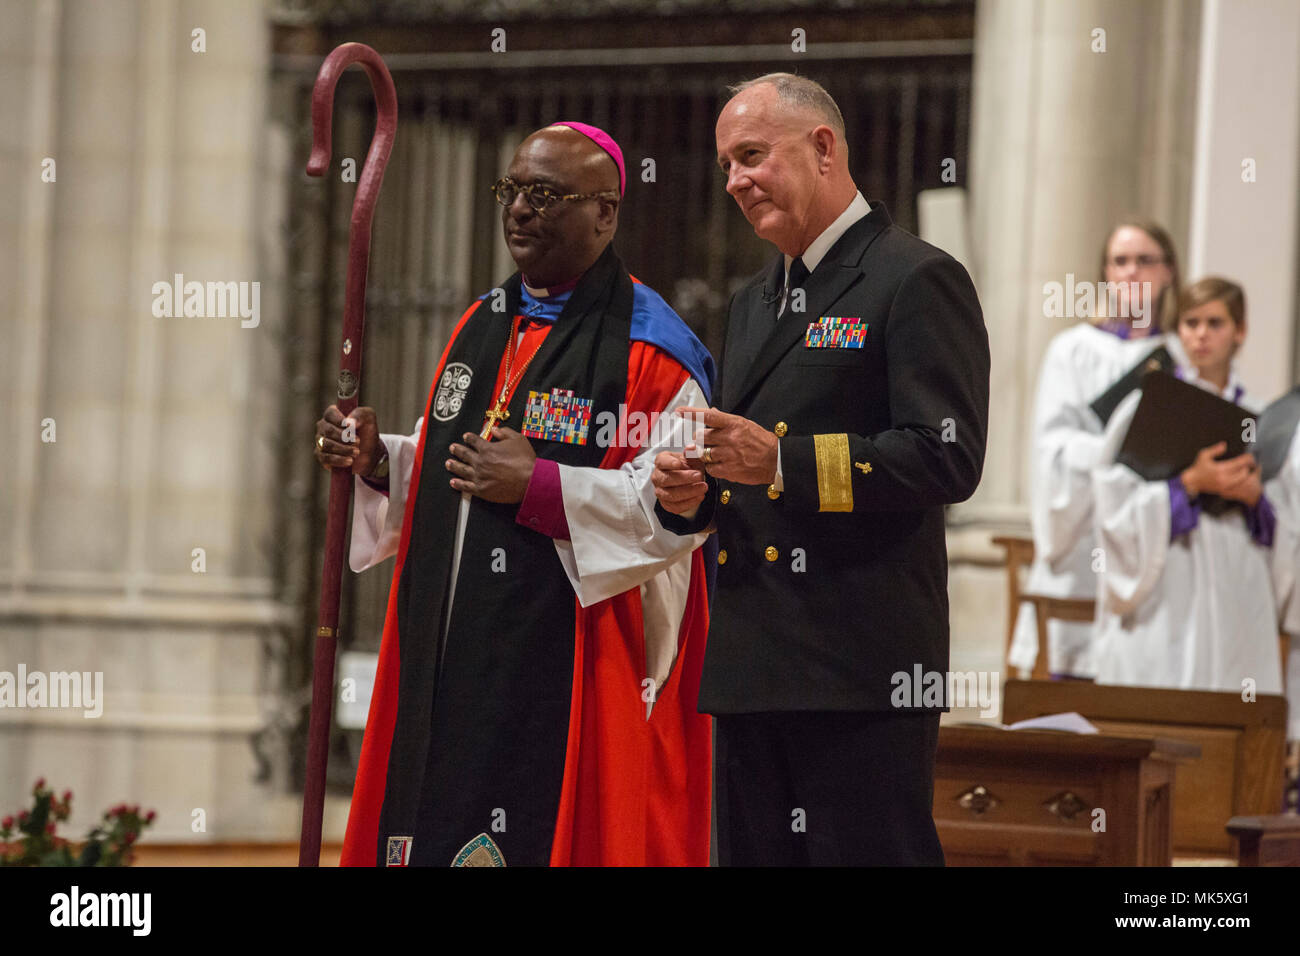 From left, The Right Reverend Carl W. Wright, bishop suffragan for Armed Service and Federal Ministries and U.S. Navy Rear. Adm. Brent W. Scott, 19th chaplain of the Marine Corps, gives remarks during the Marine Corps Worship Service at the Washington National Cathedral, Washington, D.C., Nov. 12, 2017. The worship service honored the Marines Corps' 242nd anniversary. (U.S. Marine Corps photo by Lance Cpl. Alex A. Quiles) - Stock Image